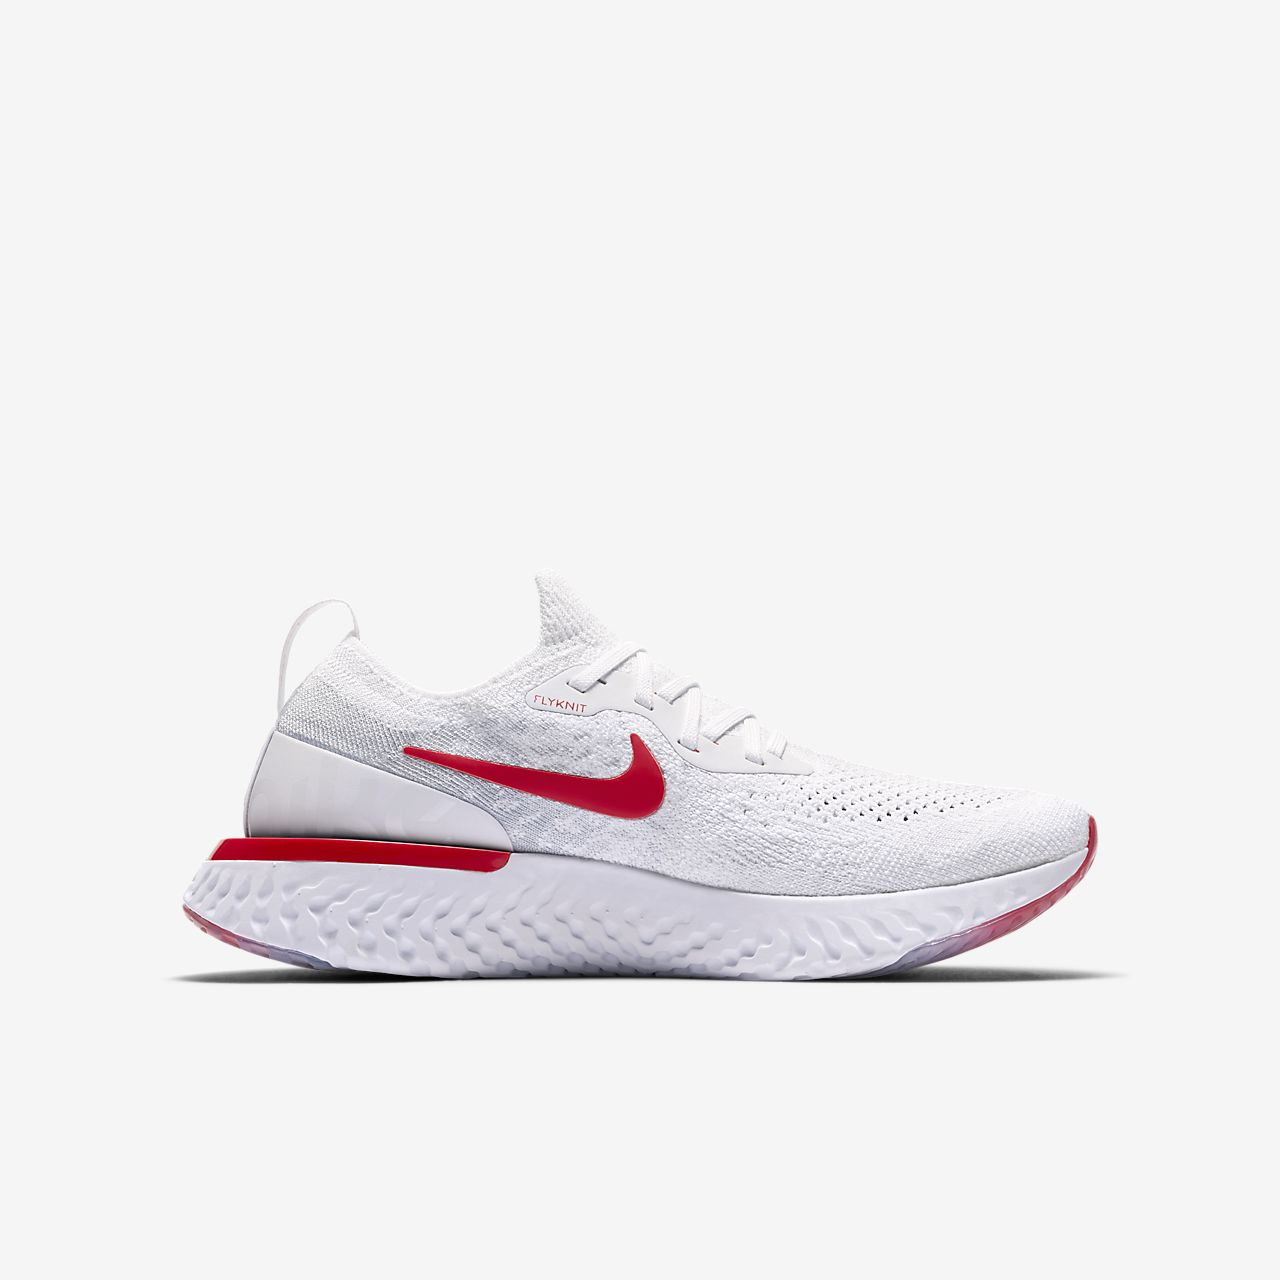 ... Nike Epic React Flyknit Big Kids' Running Shoe